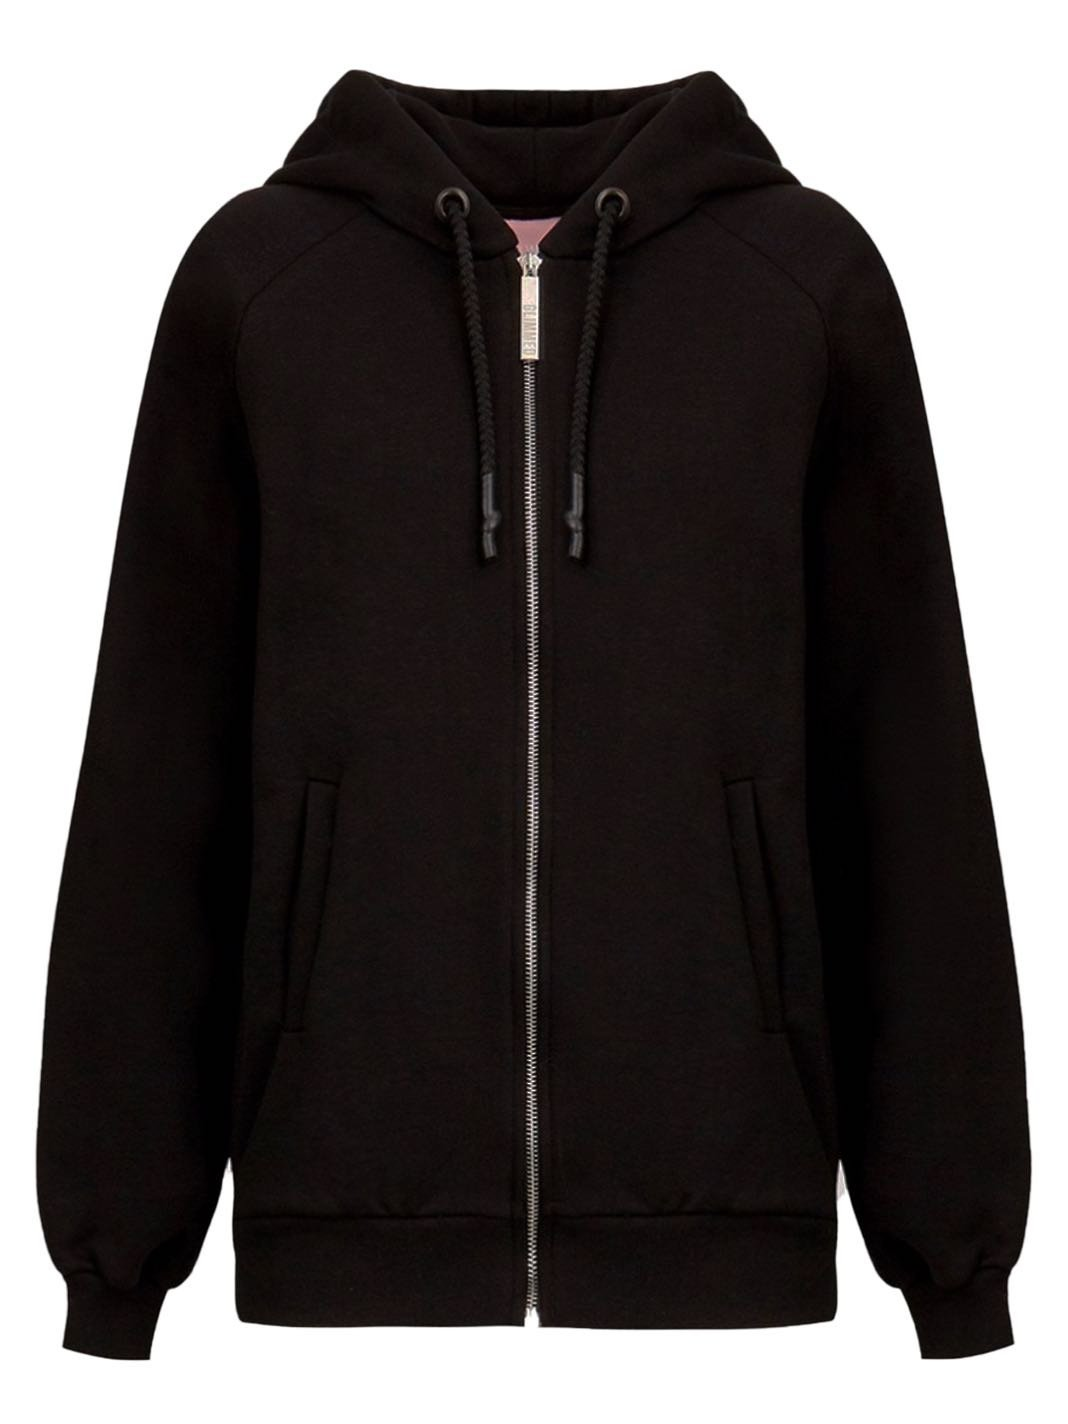 Ricamo Cotton Hoodie - The Bobby Boga